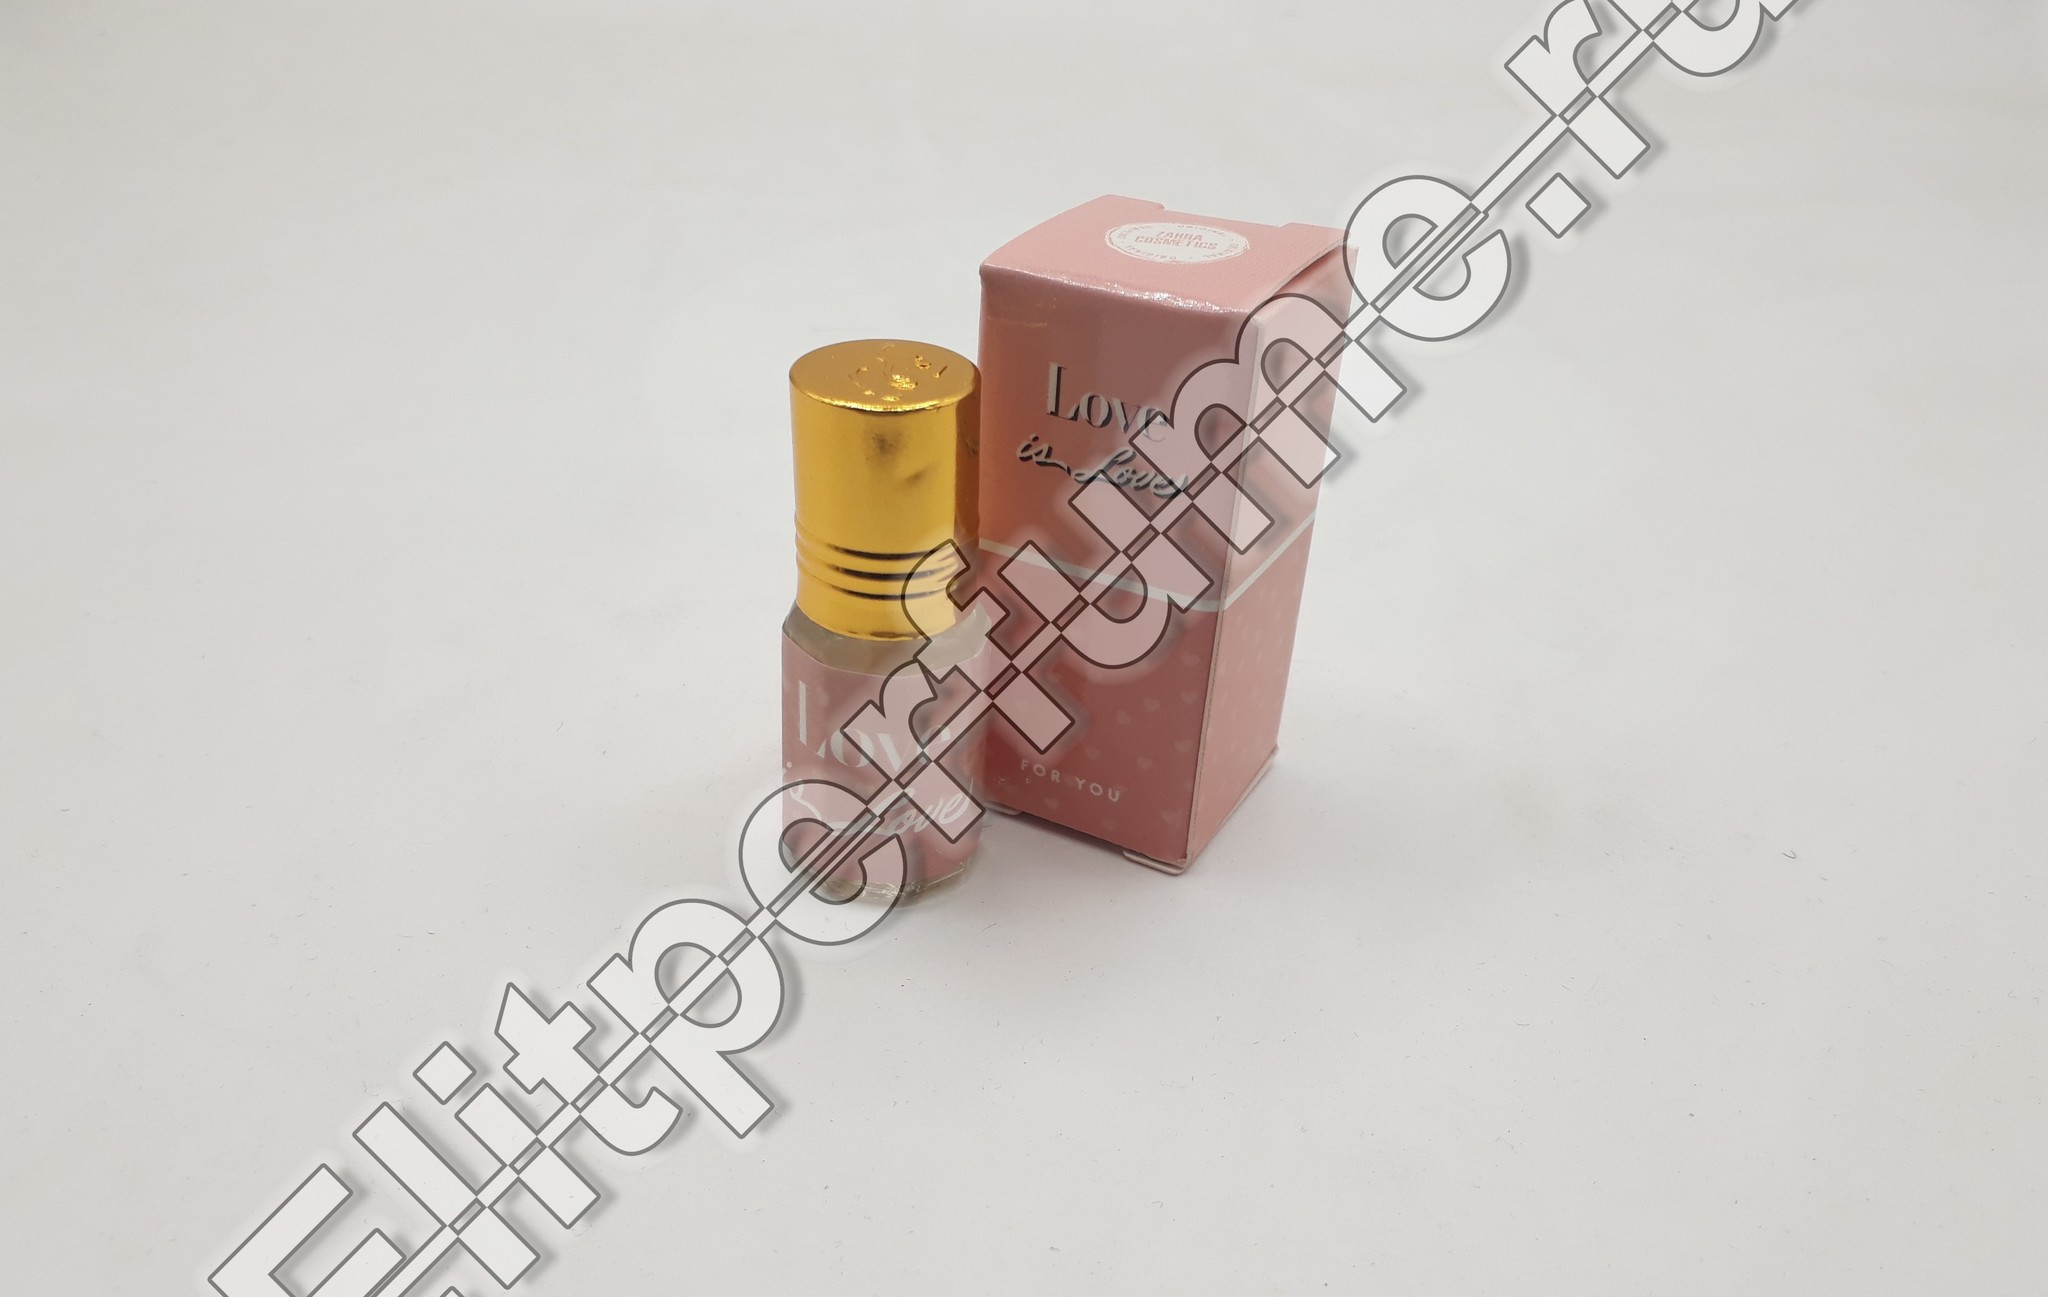 For You Love is love 3 мл арабские масляные духи от Захра Zahra Perfumes